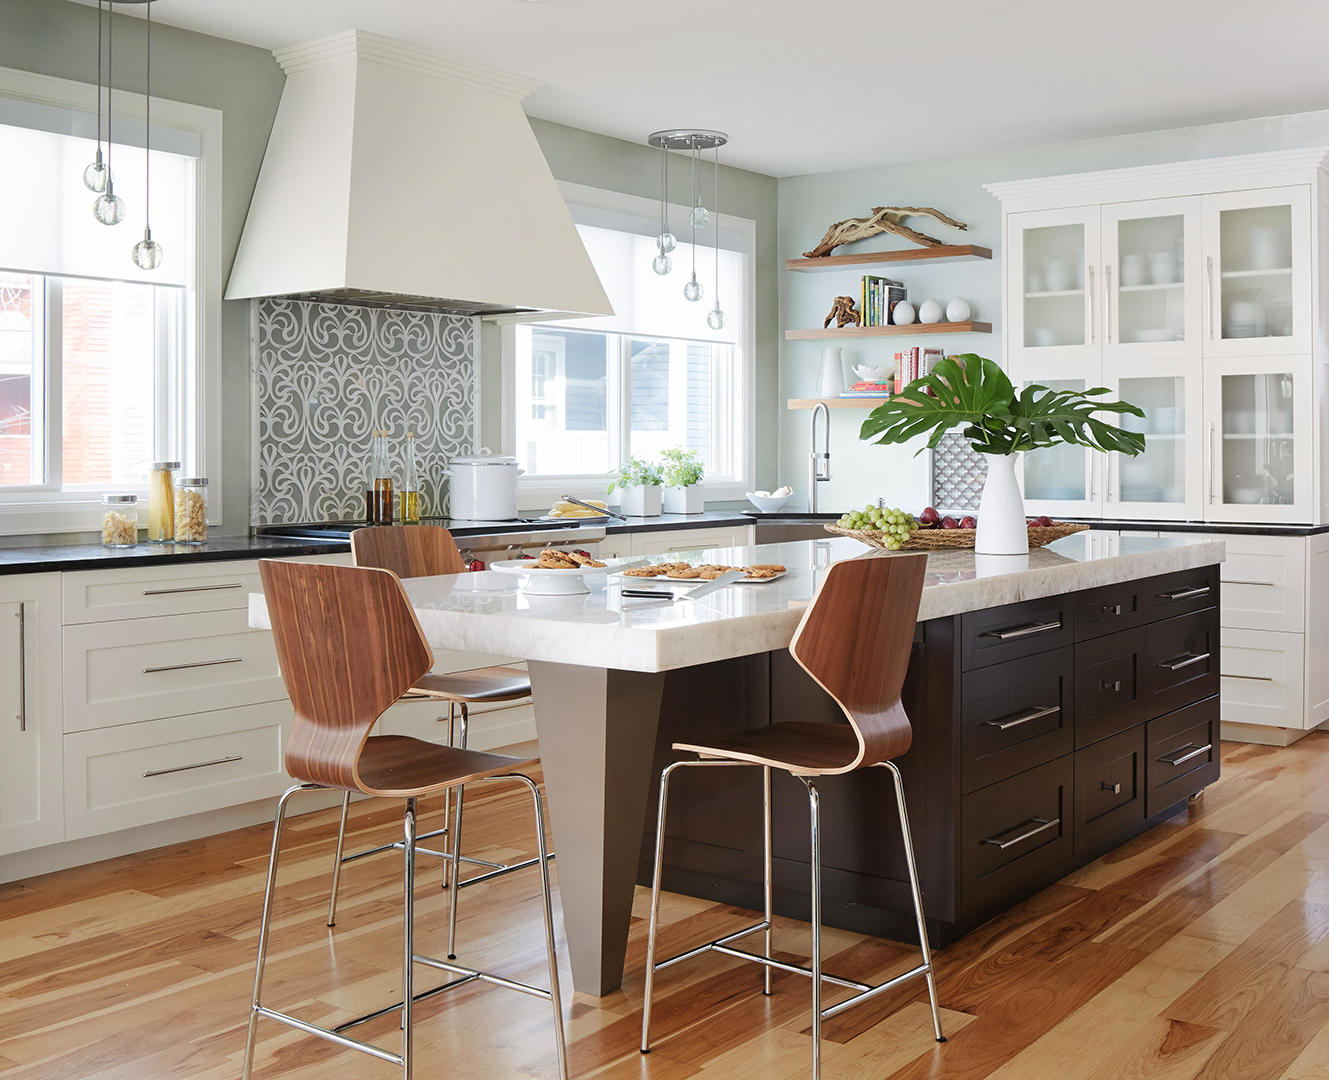 kitchen with large island and wood flooring